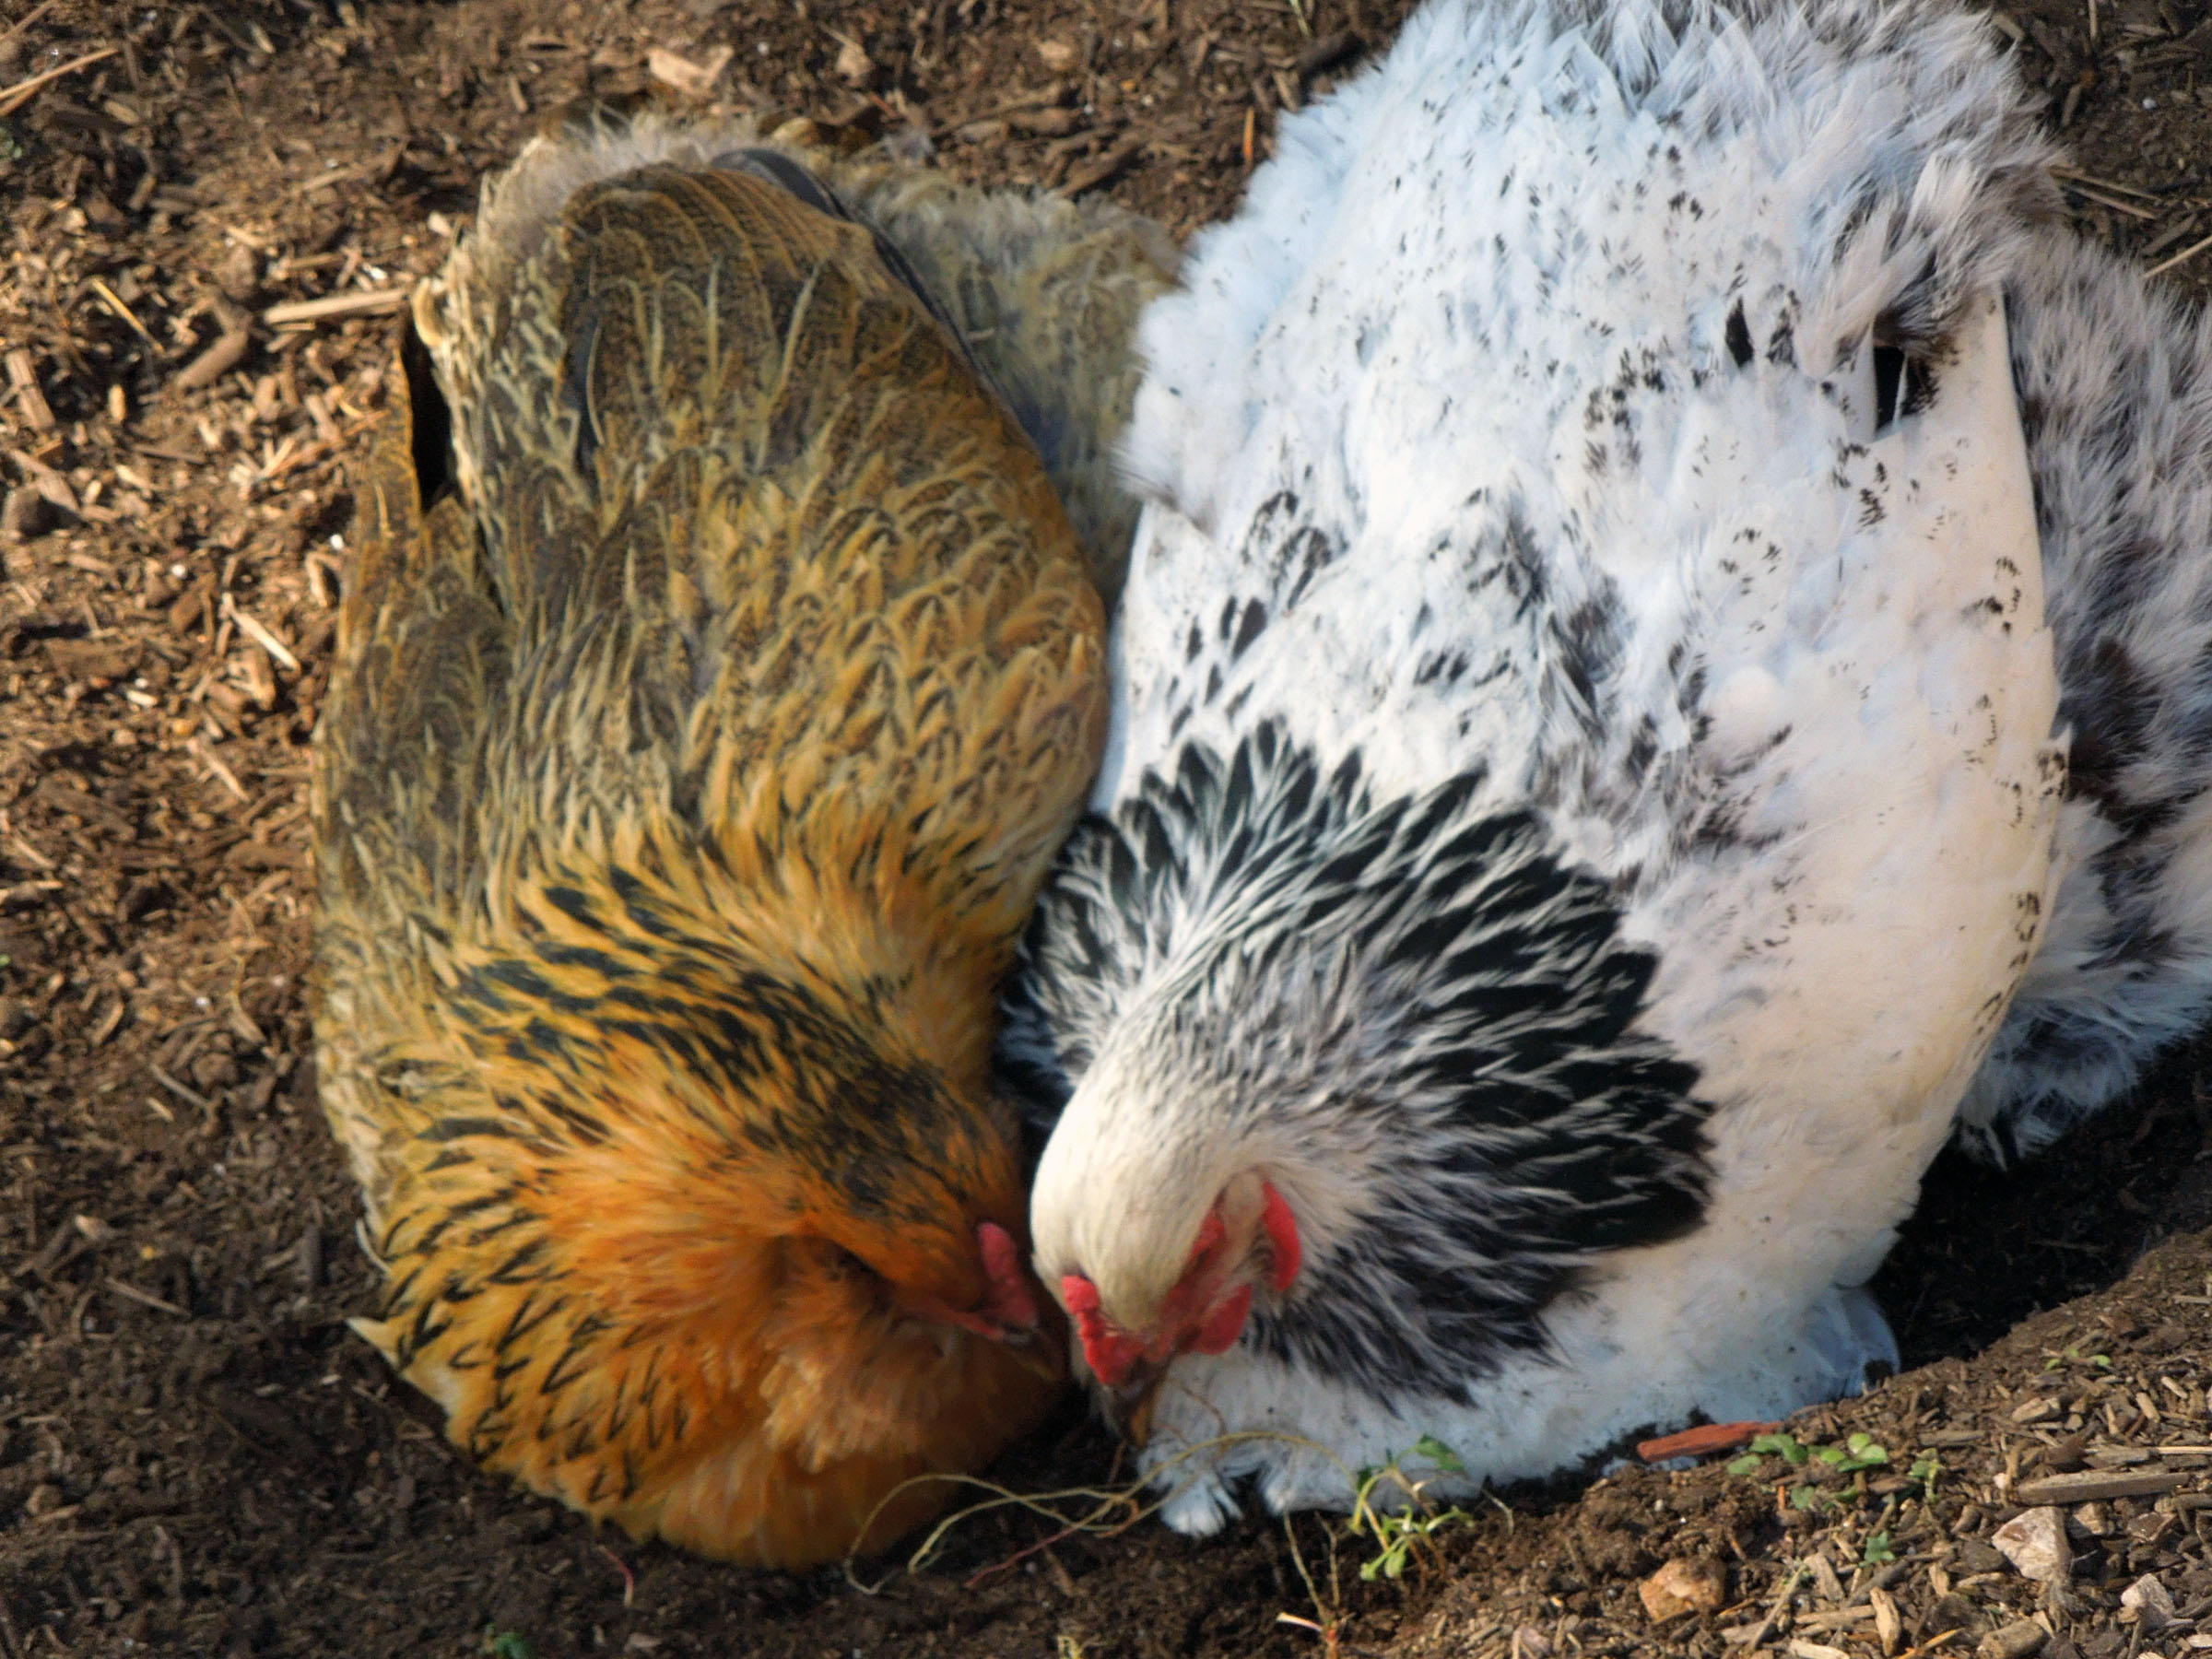 Chickens are a never-ending source of amusement. Funniest critters ever.